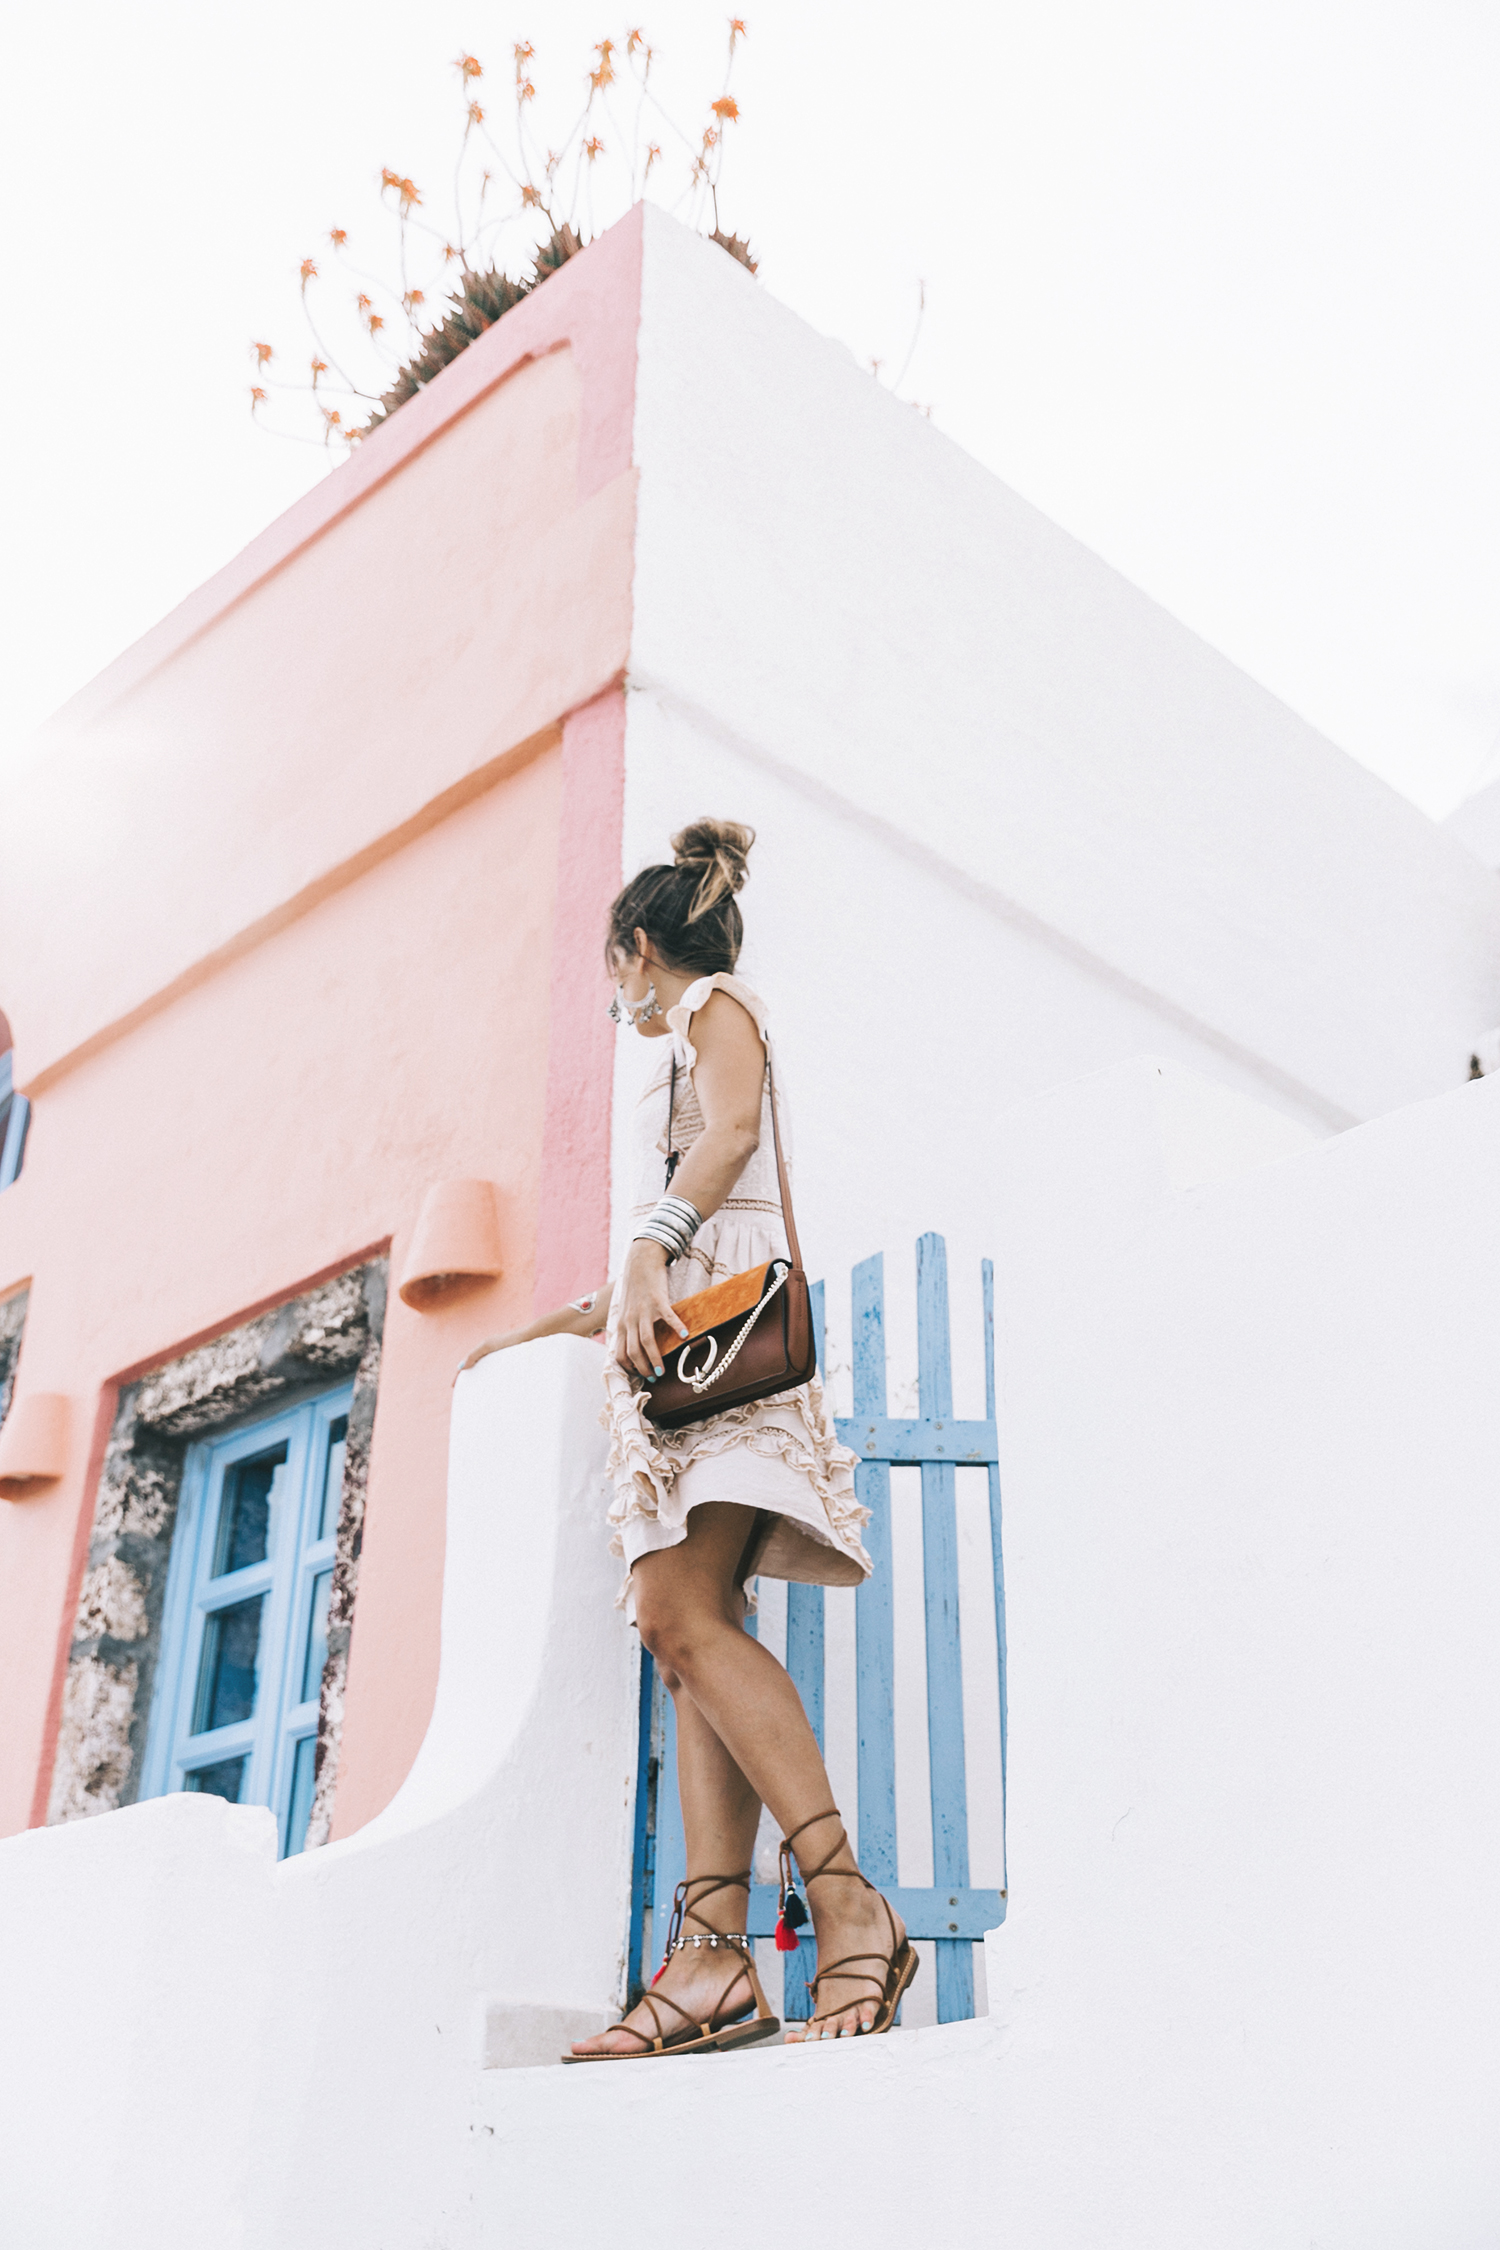 Chloe_Bag-Faye_Bag-For_Love_And_Lemons-Dress-Topknot-Soludos_Escapes-Soludos_Espadrilles-Summer-Santorini-Collage_Vintage-17